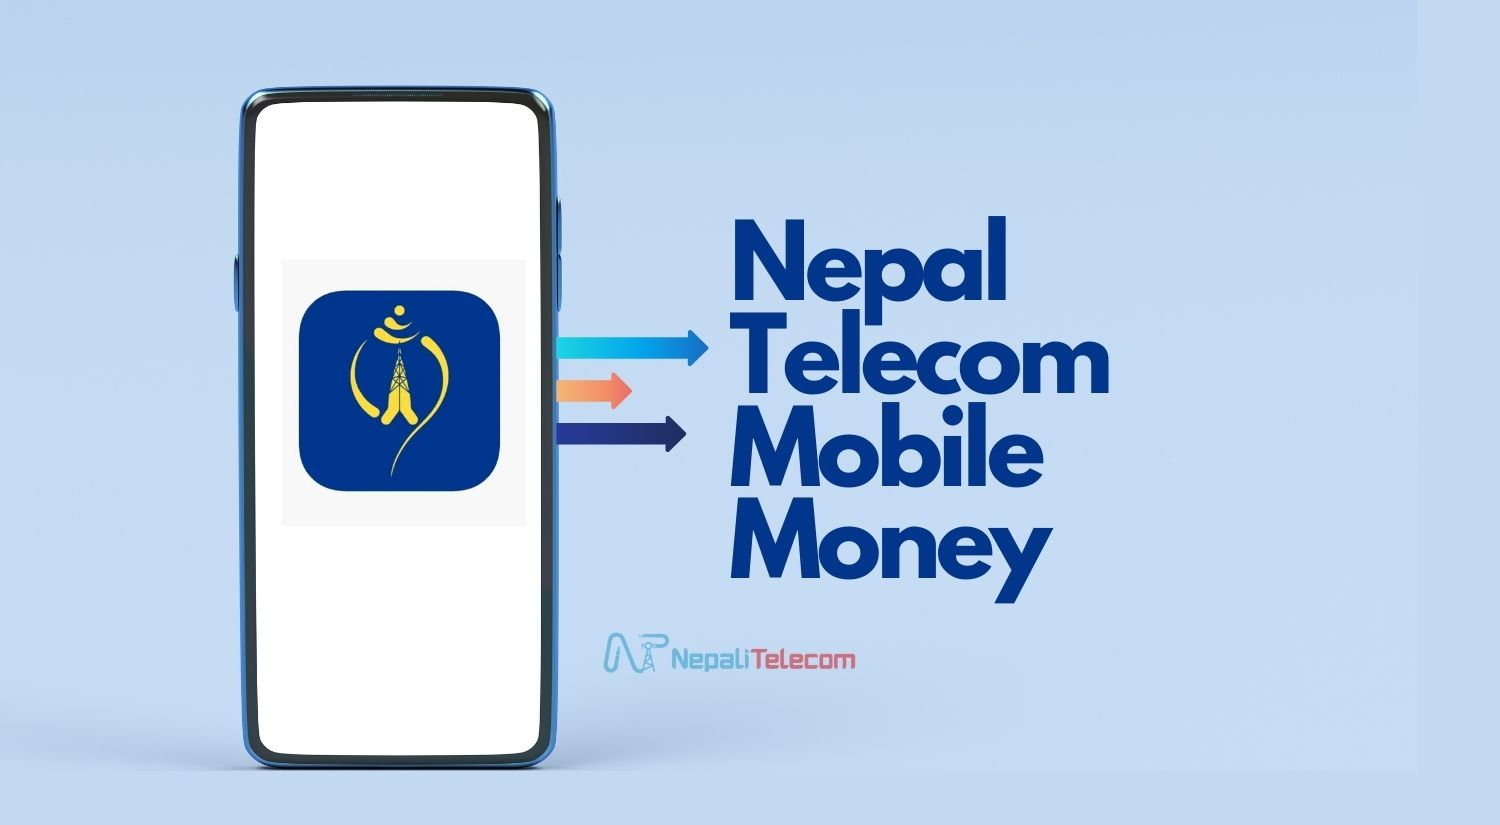 Nepal Telecom mobile money service